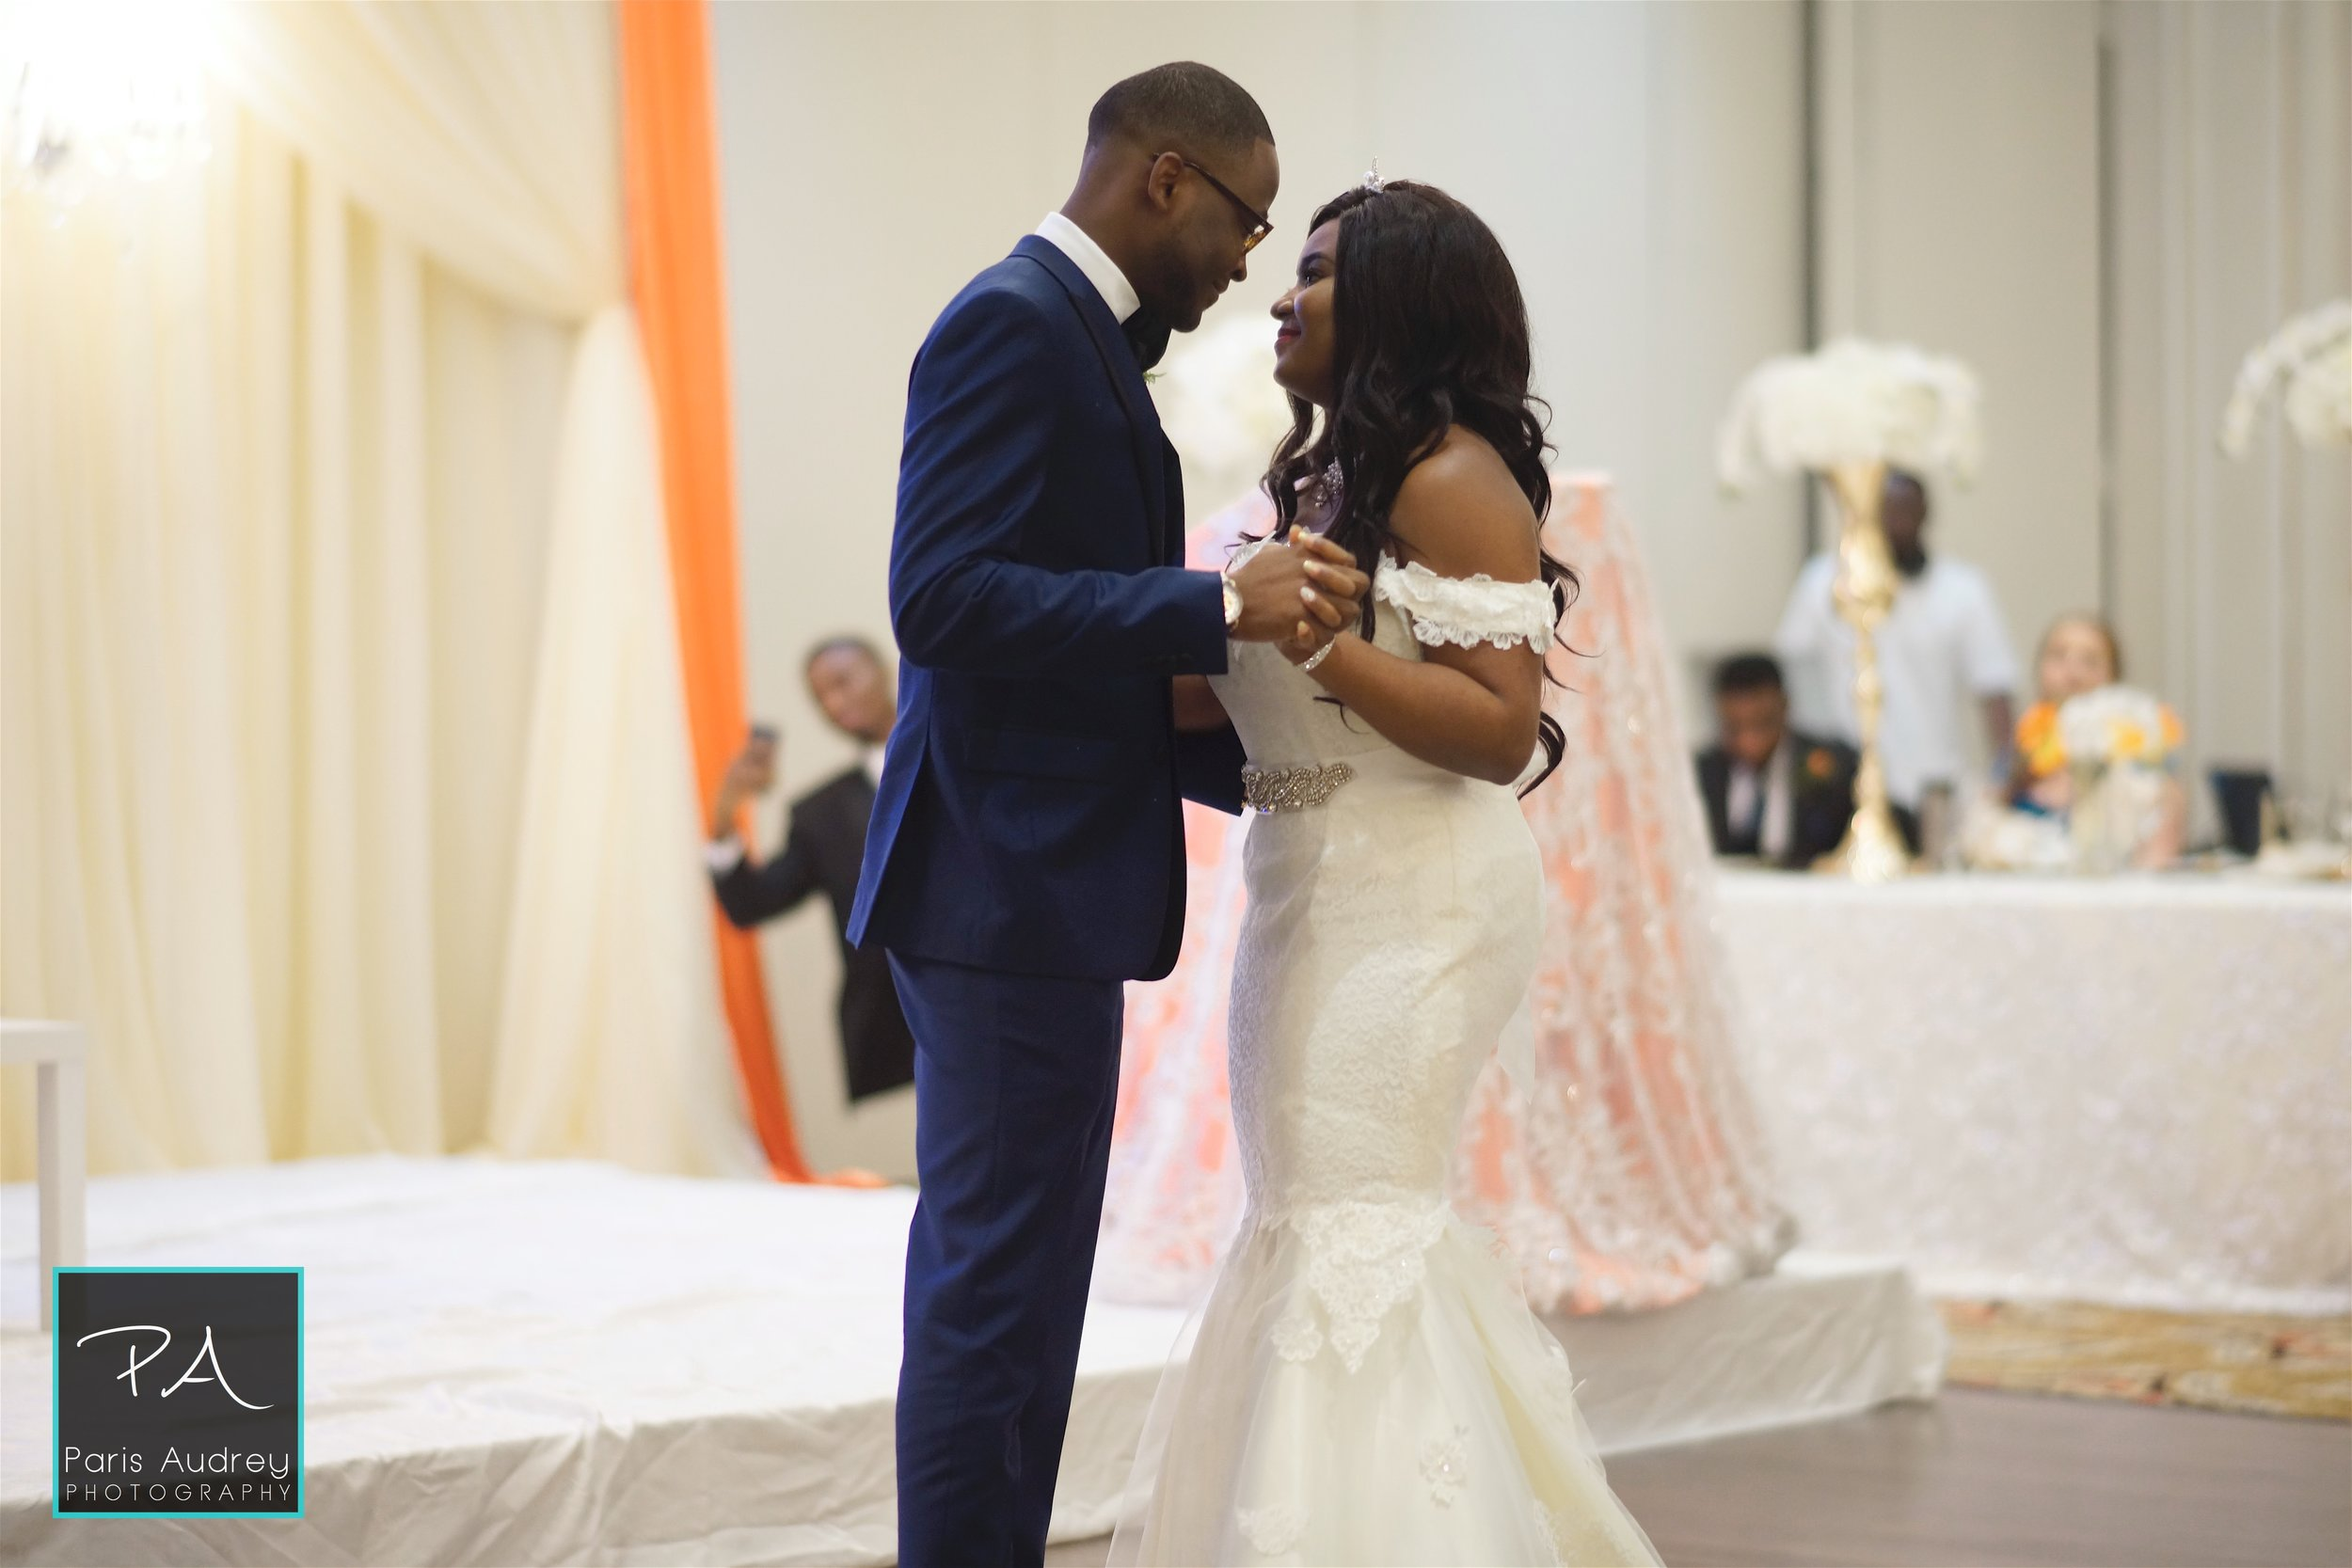 PA_Roseanne&Tosin_WeddingL (70).jpg